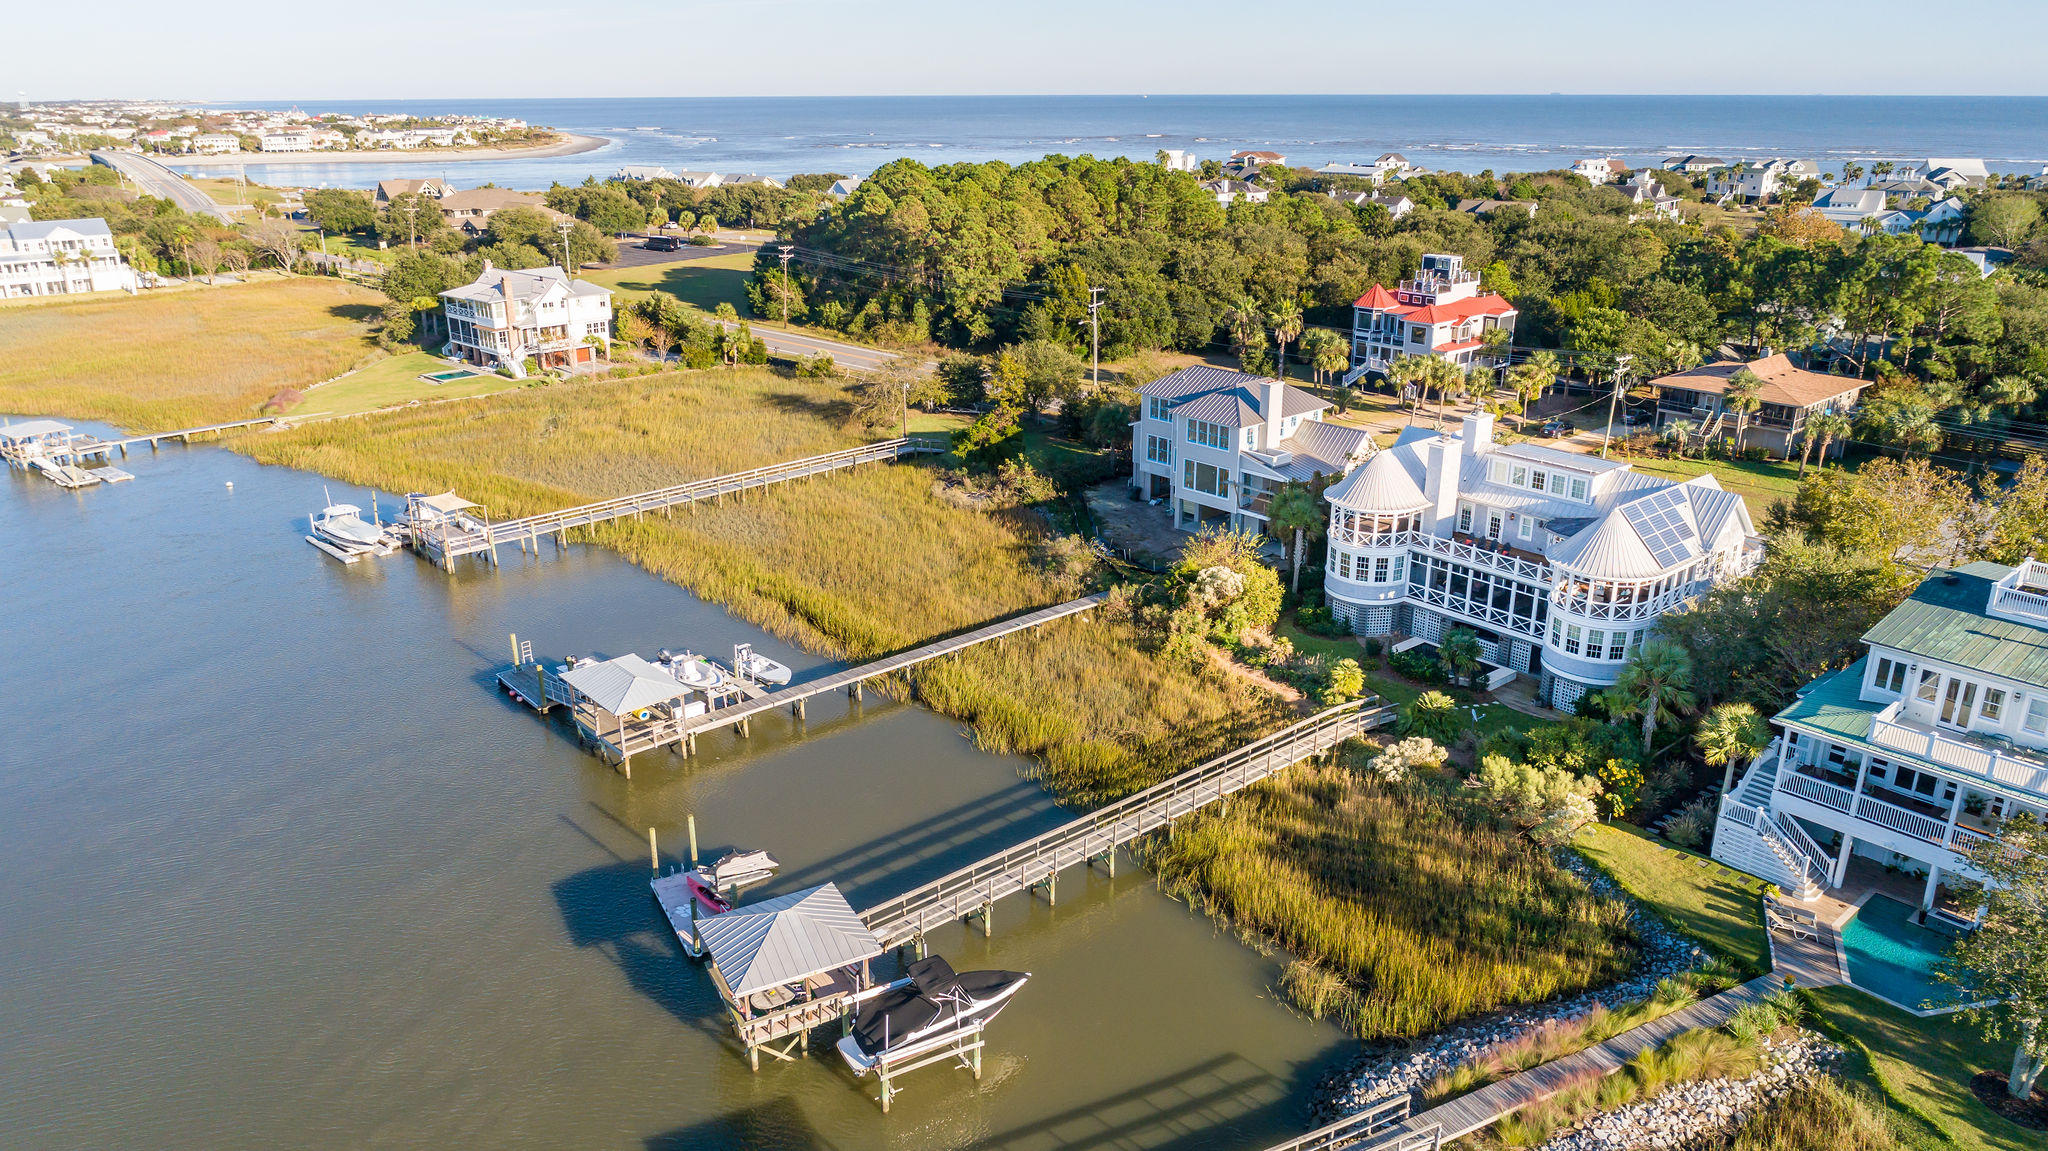 Sullivans Island Homes For Sale - 3030 Jasper, Sullivans Island, SC - 59